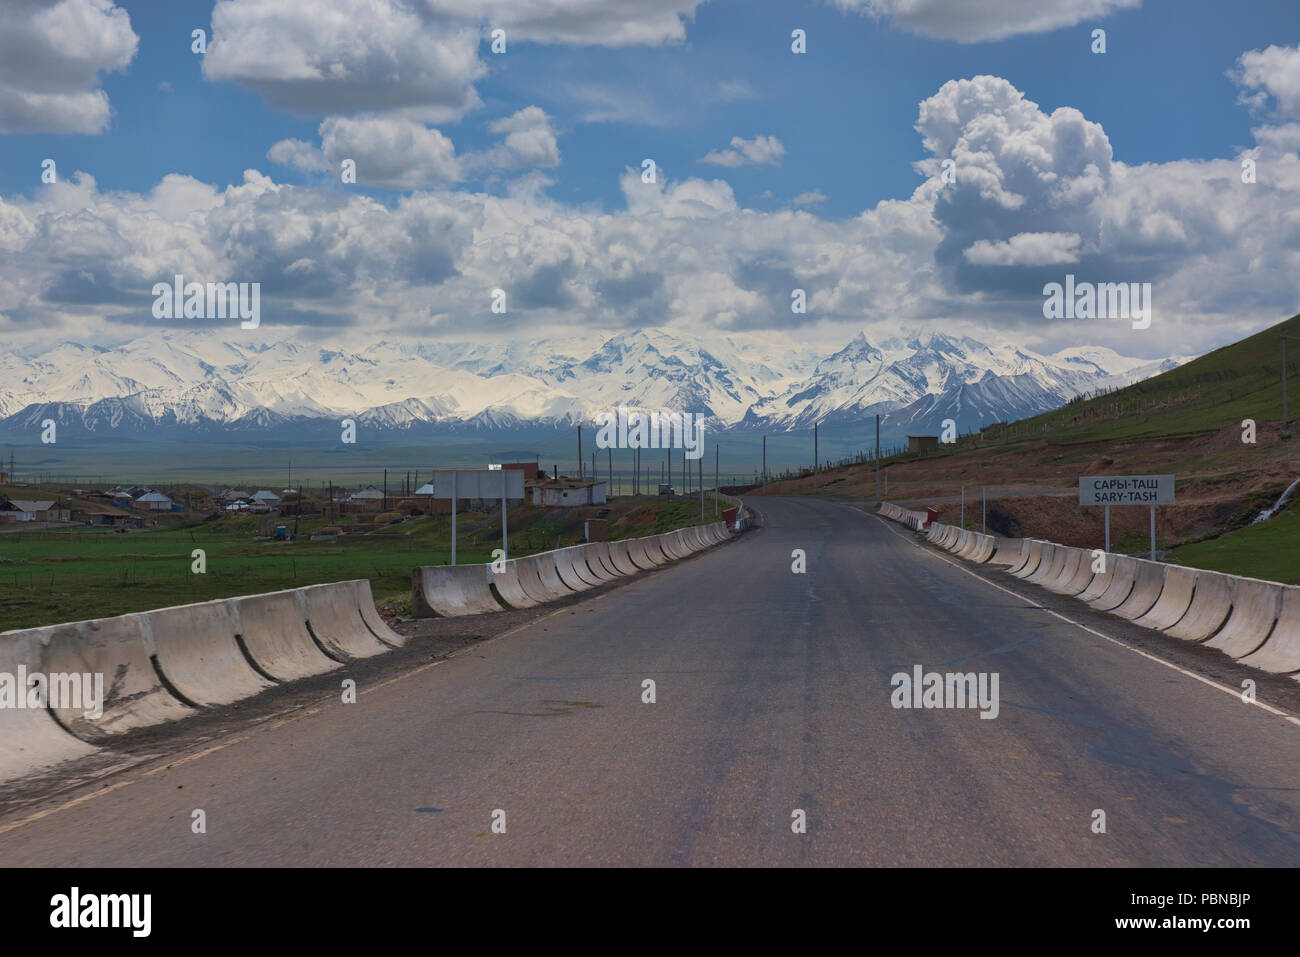 View of the high Pamirs at the start of the Pamir Highway, Sary Tash, Kygyzstan Stock Photo